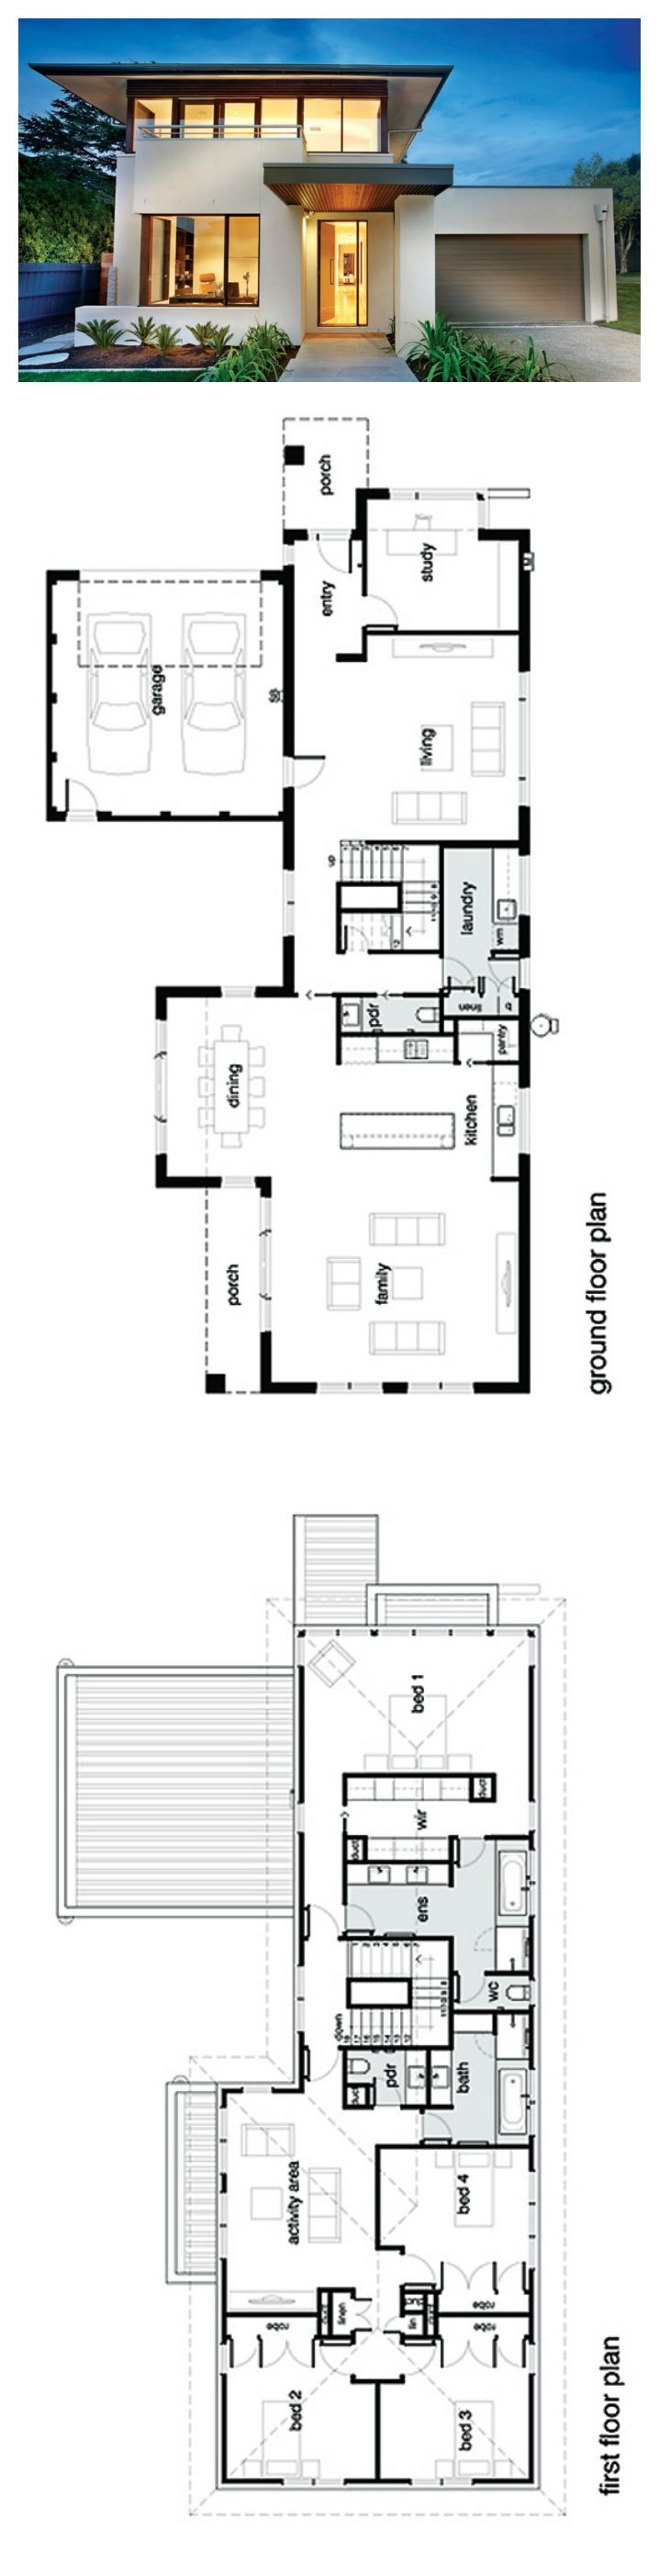 Best 25 modern house plans ideas on pinterest for Modern mansion blueprints